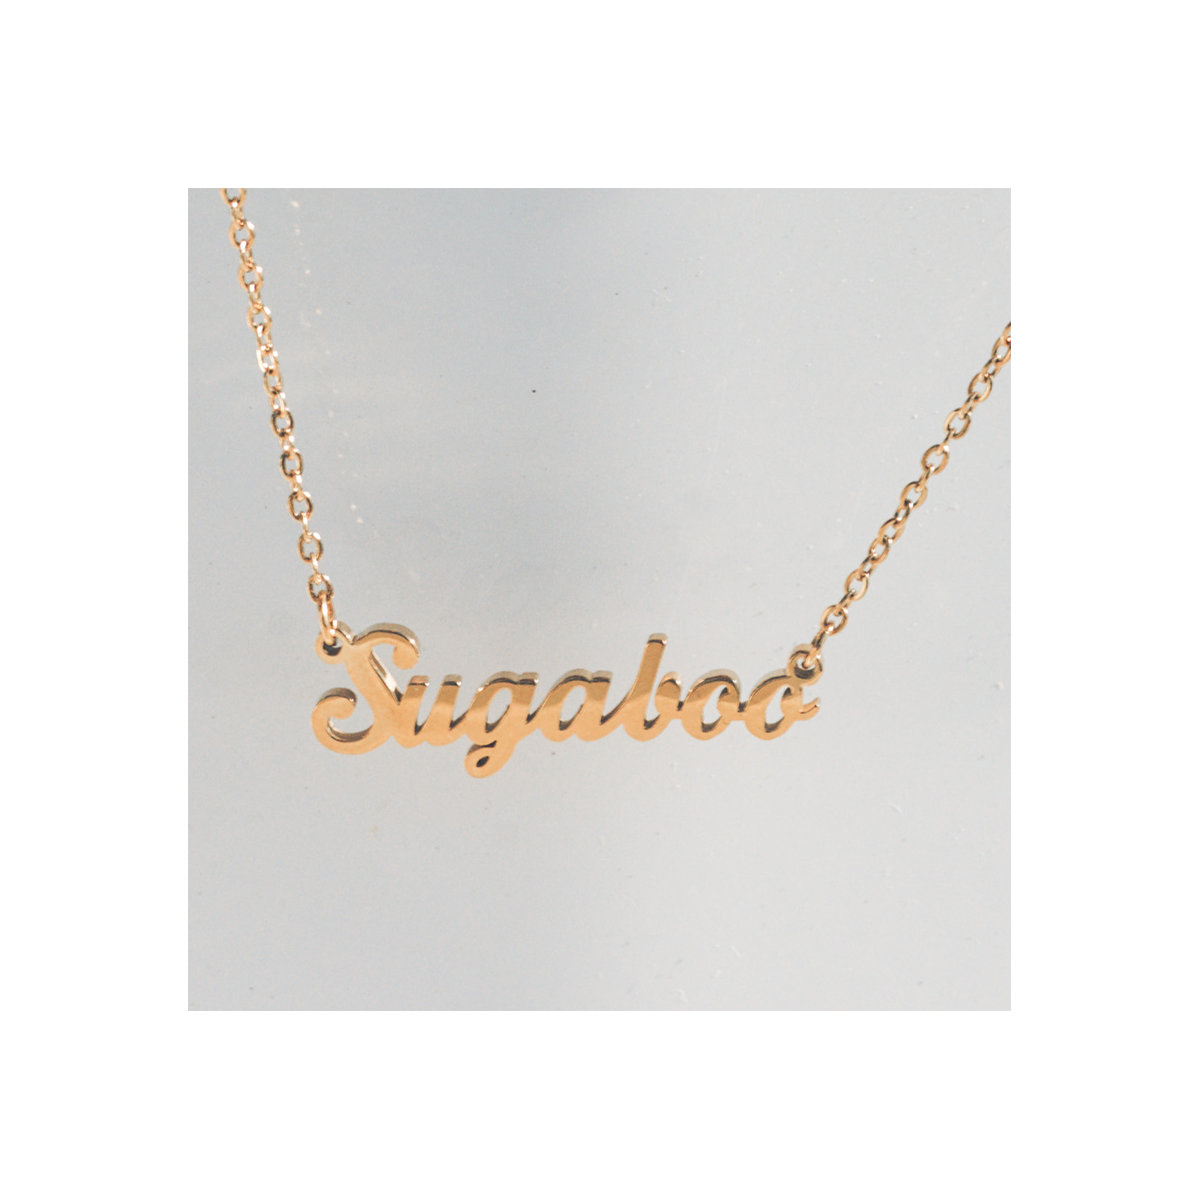 Sugaboo Necklace